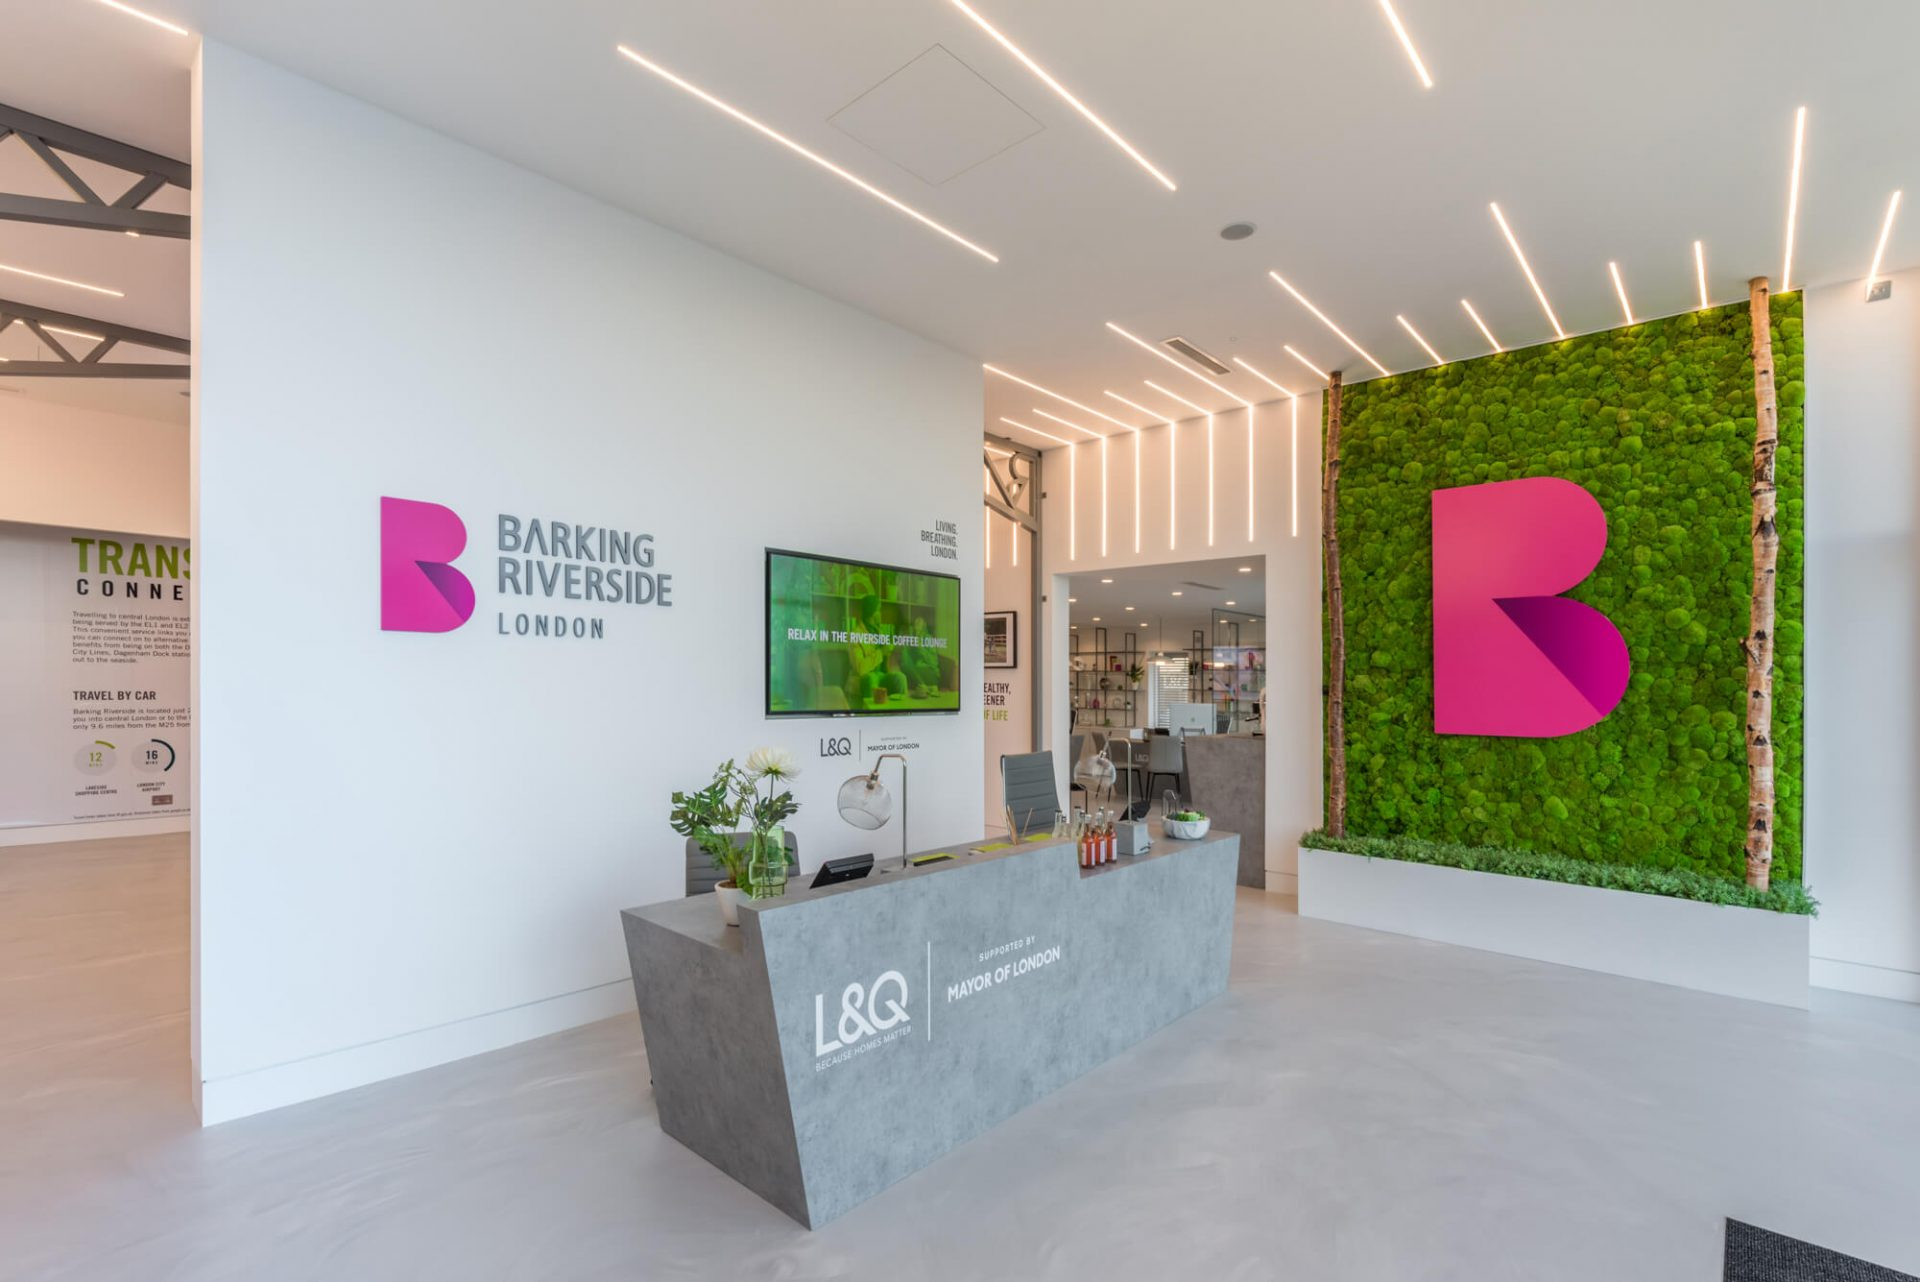 the quirky touches improving the customer journey and customer experience at Barking Riverside marketing suite